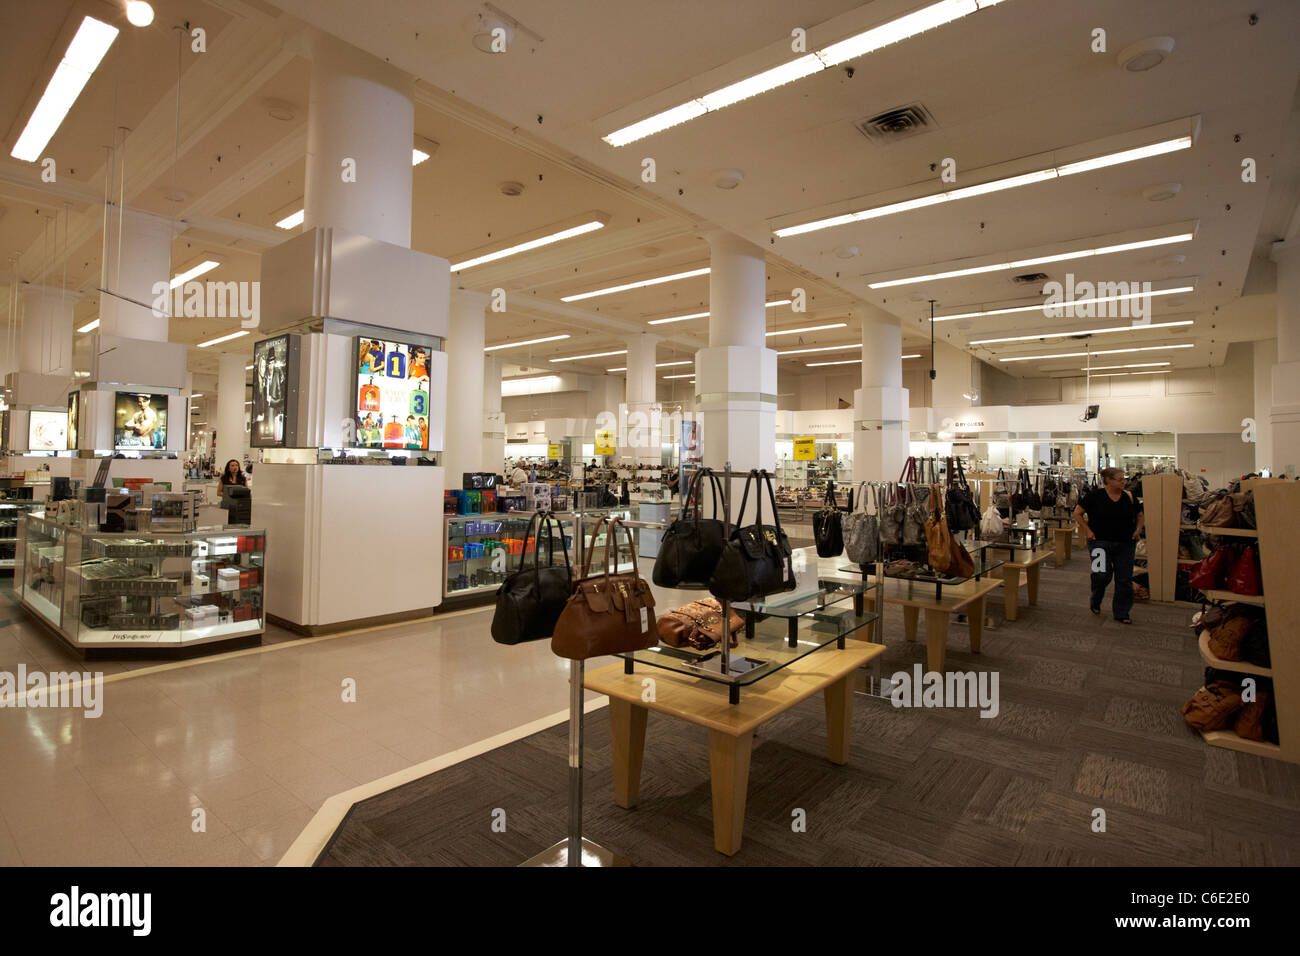 interior of the bay hudson bay company department store